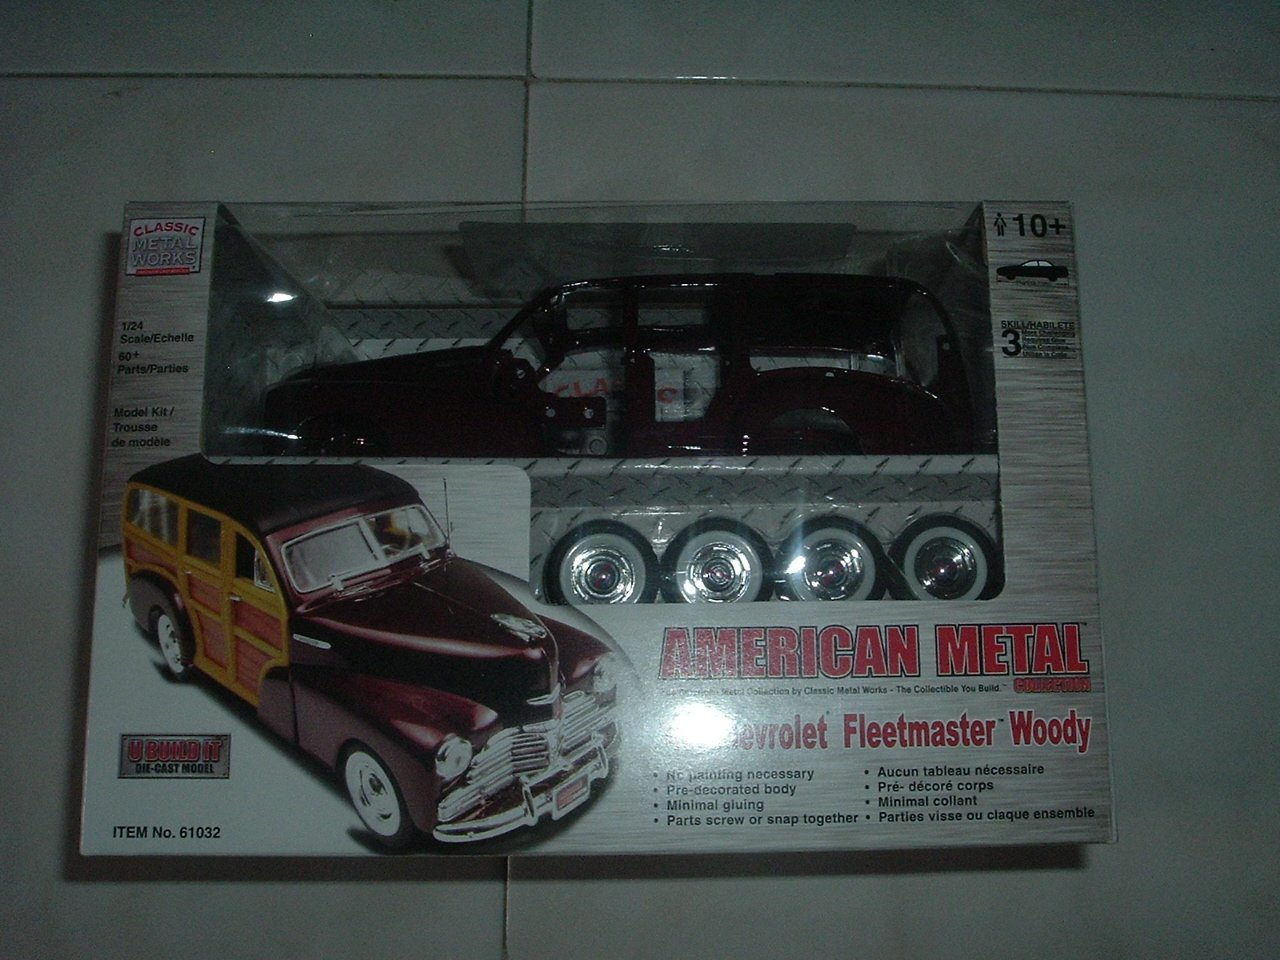 Die-Cast Metal '48 Chevy Fleetmaster Woody Model Kit